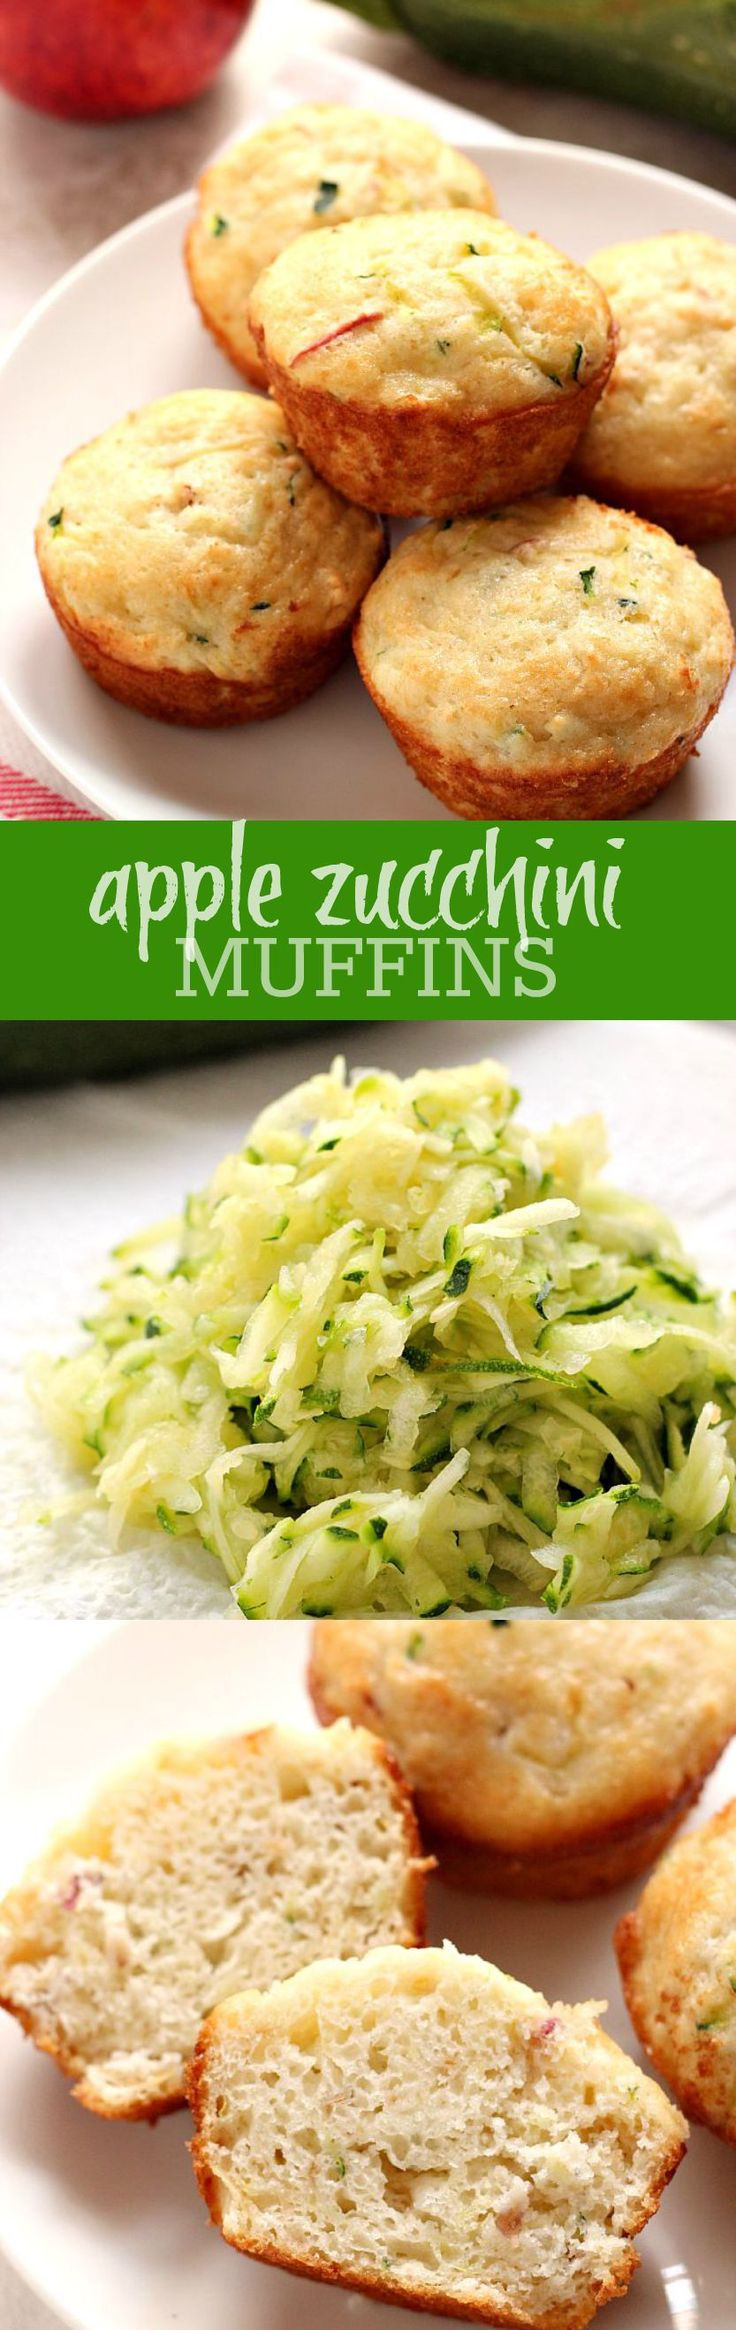 Apple Zucchini Muffins - soft and fluffy muffins with zucchini and apple. Perfect for lunch boxes or as an after-school snack!  | crunchycreamysweet.com